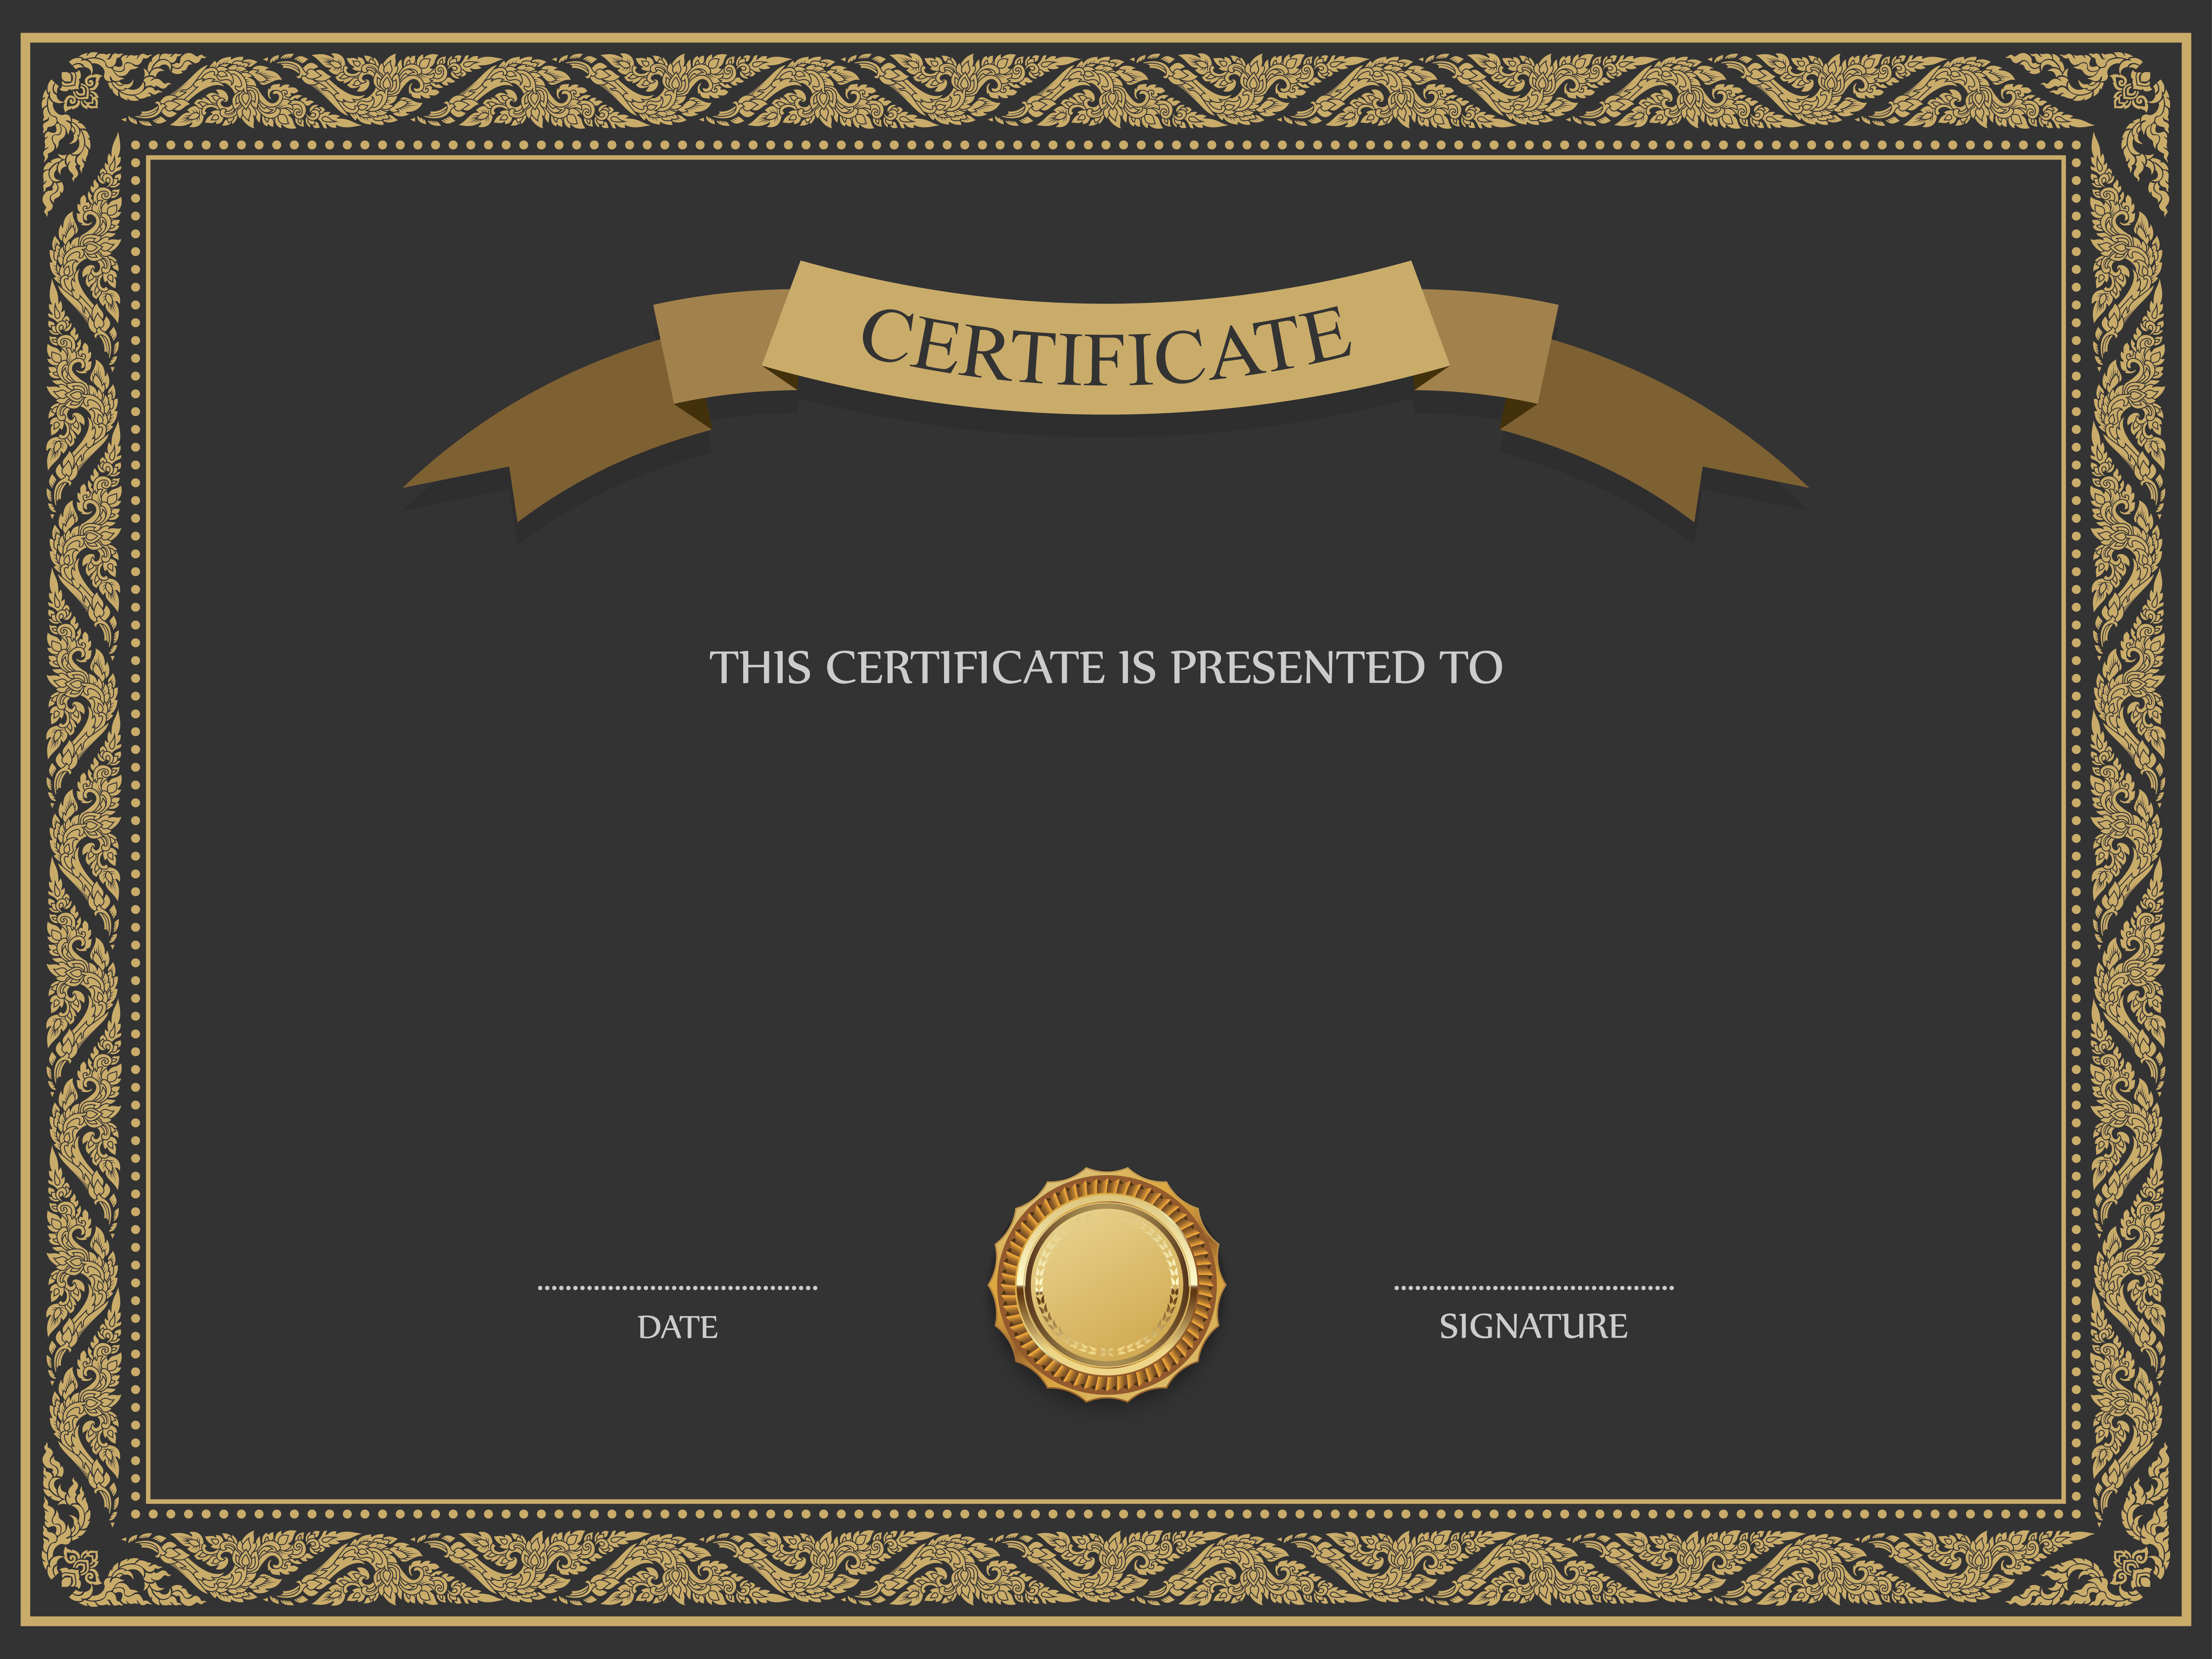 Black and Brown Certificate Template PNG Image | Projects to Try ...